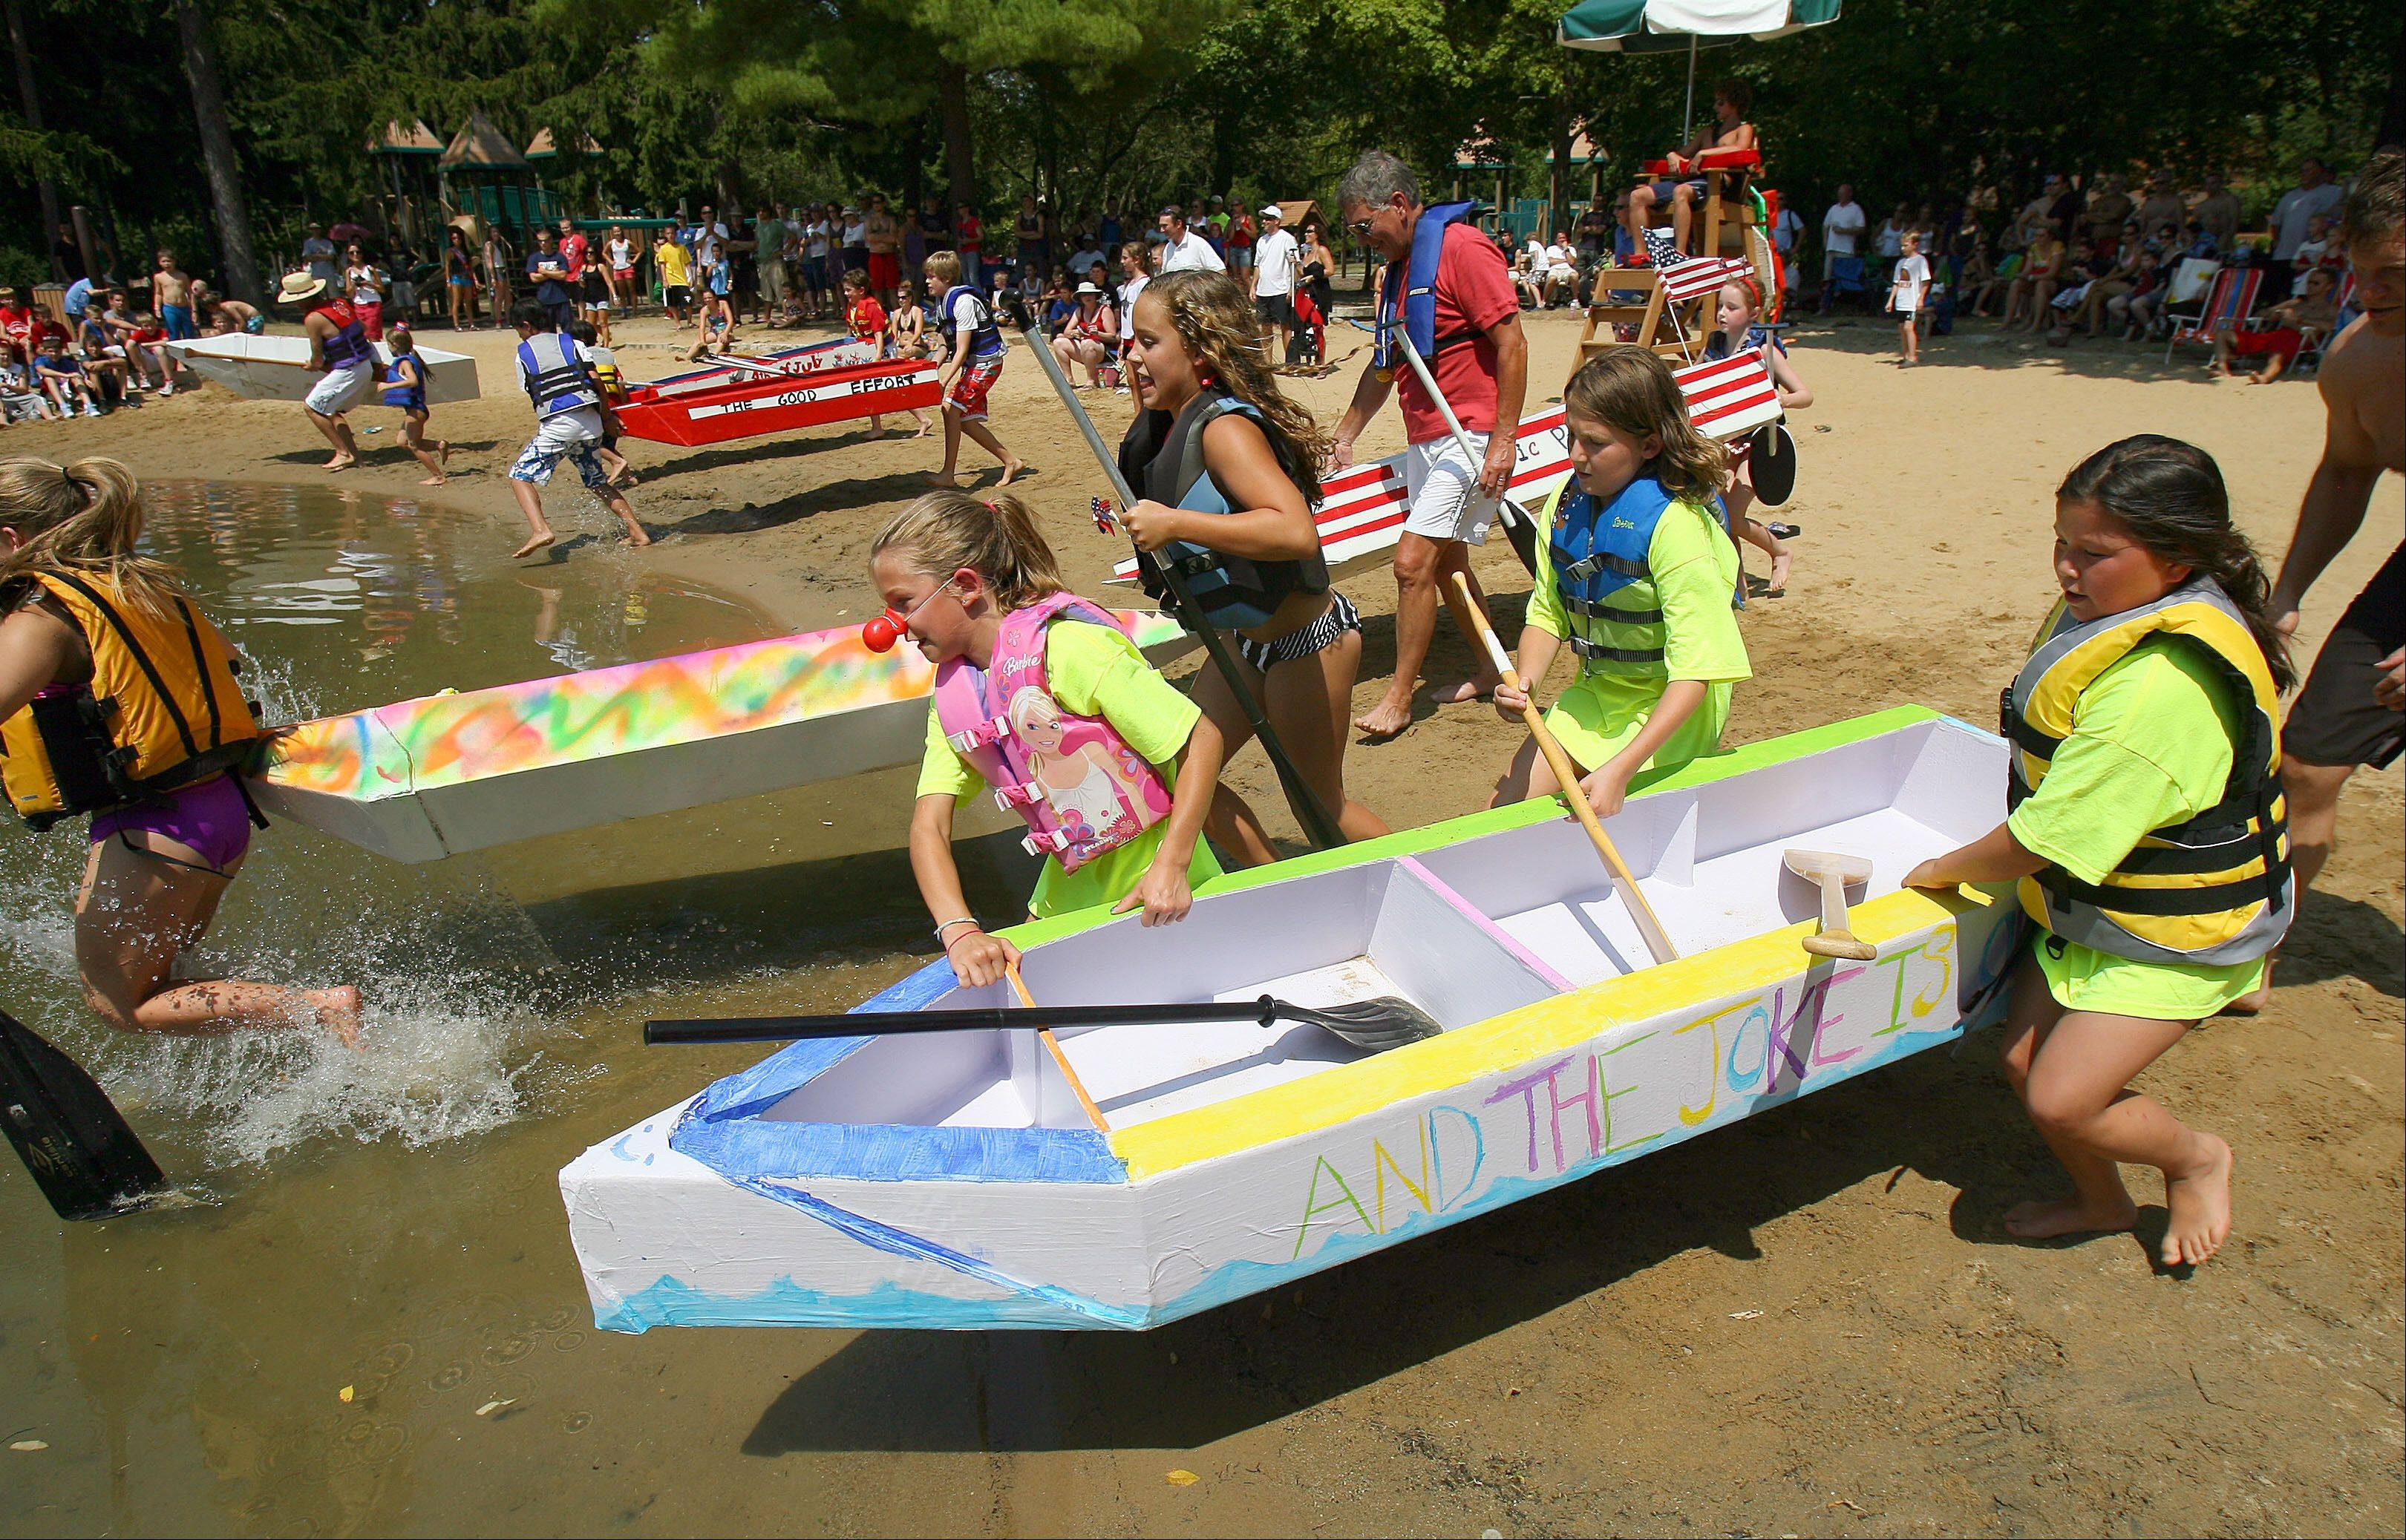 Racers dash for the water during a cardboard boat regatta at Lincolnshire's Red White and Boom 2012 event Wednesday at Spring Lake Park.